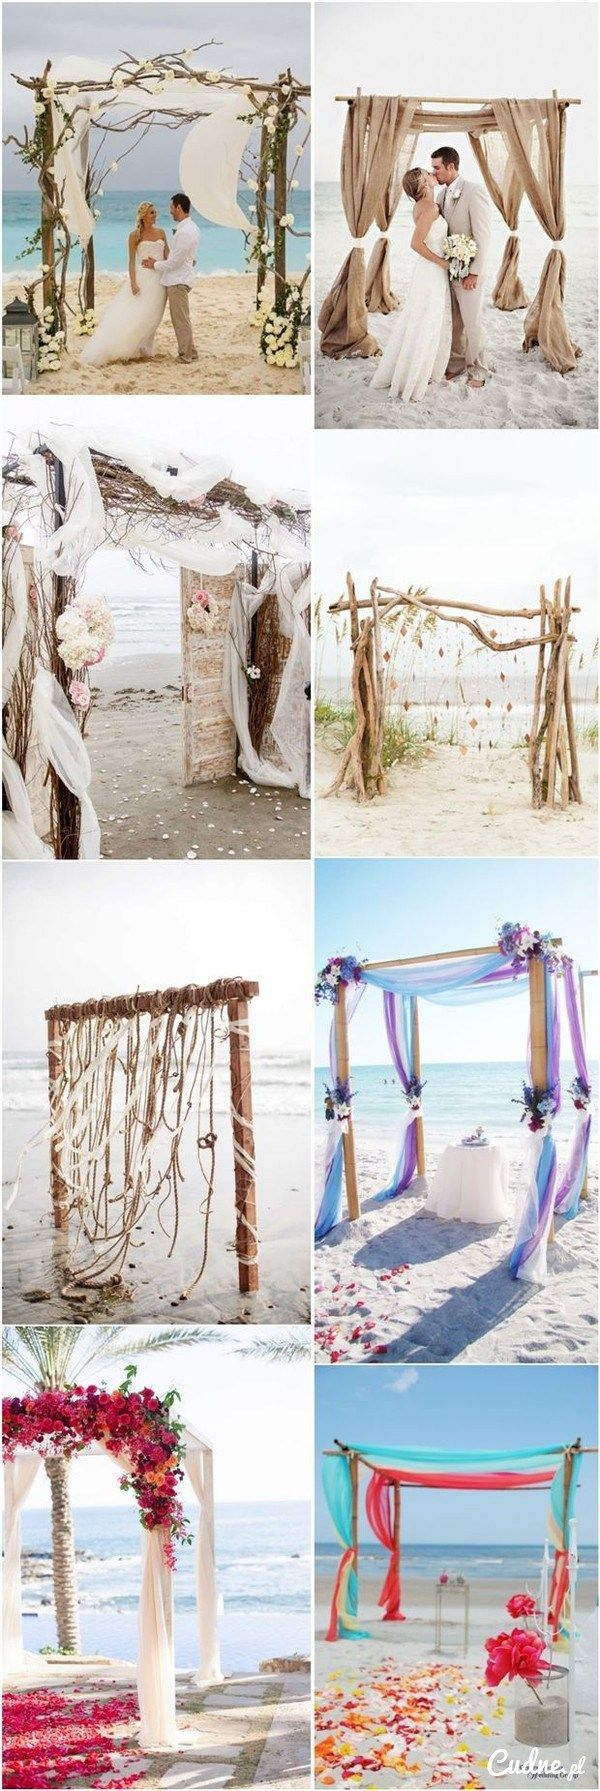 DIY Beach Wedding Decoration Ideas weddingdecoration  Will You